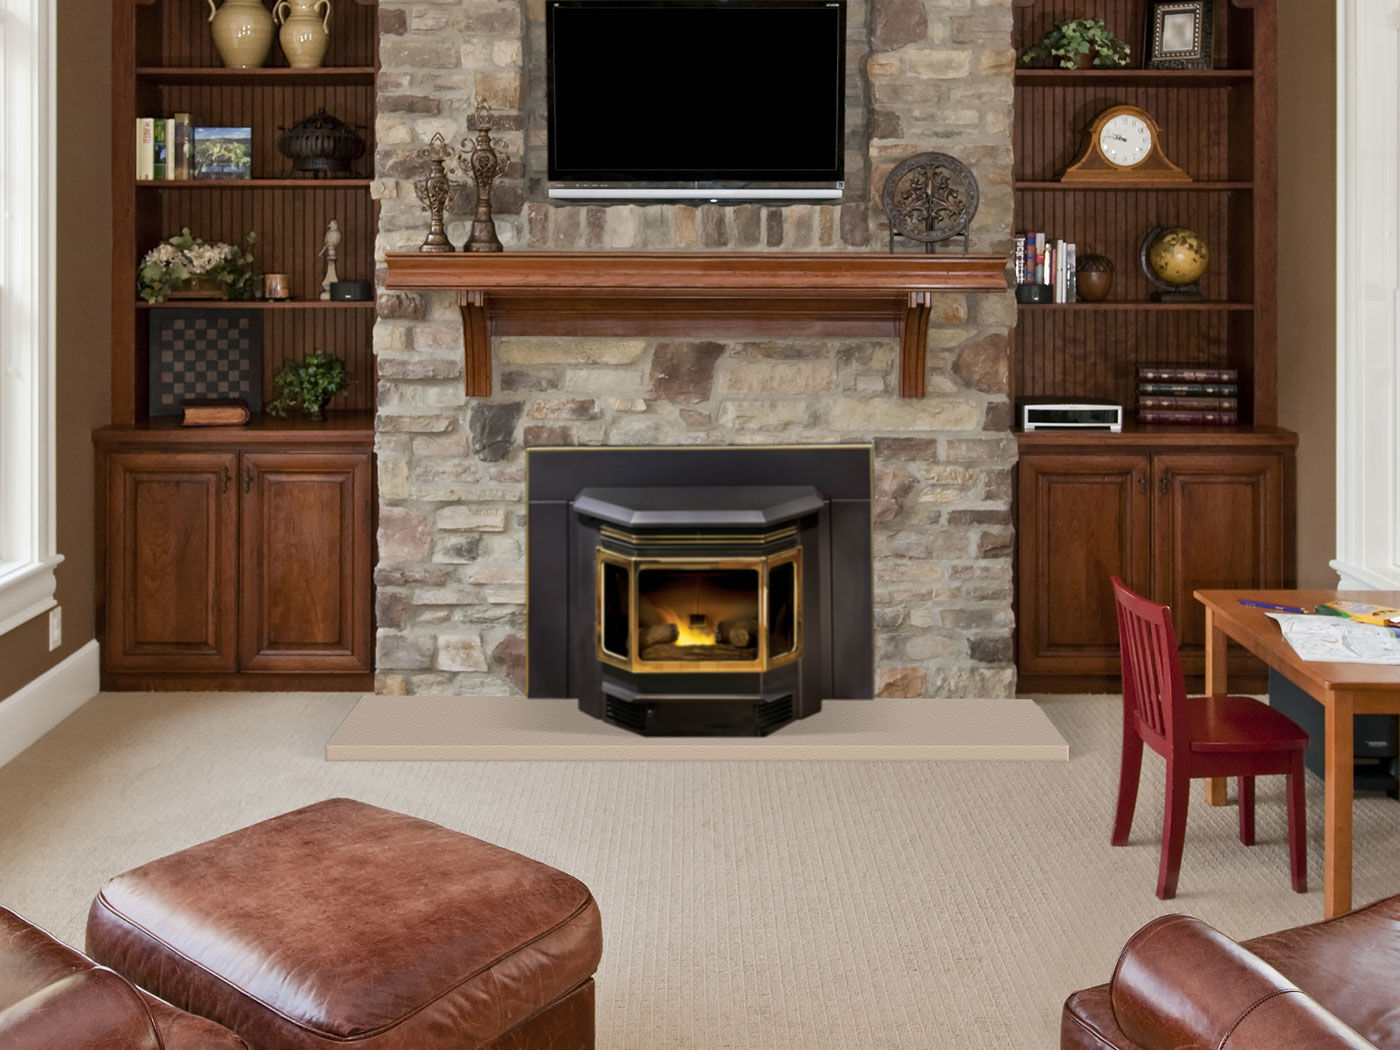 Insert Cheminee A Pellets Pellet Fireplace Insert 3 Sided Classic Bay 1200 Quadra Fire